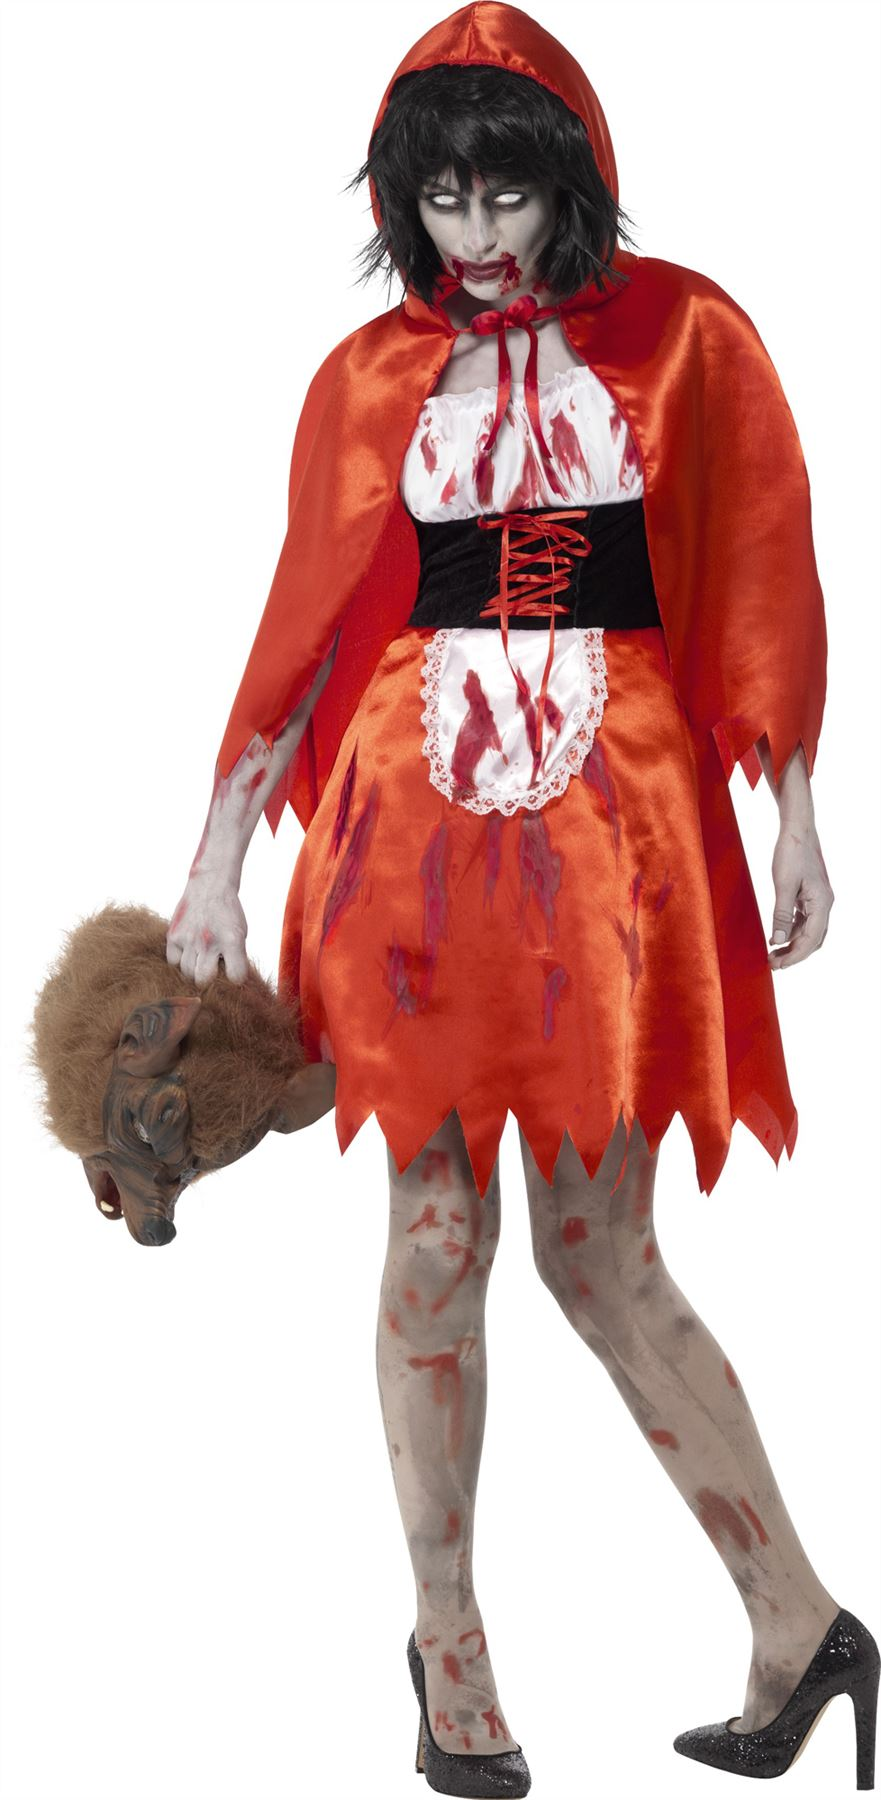 Red dress zombie outfit